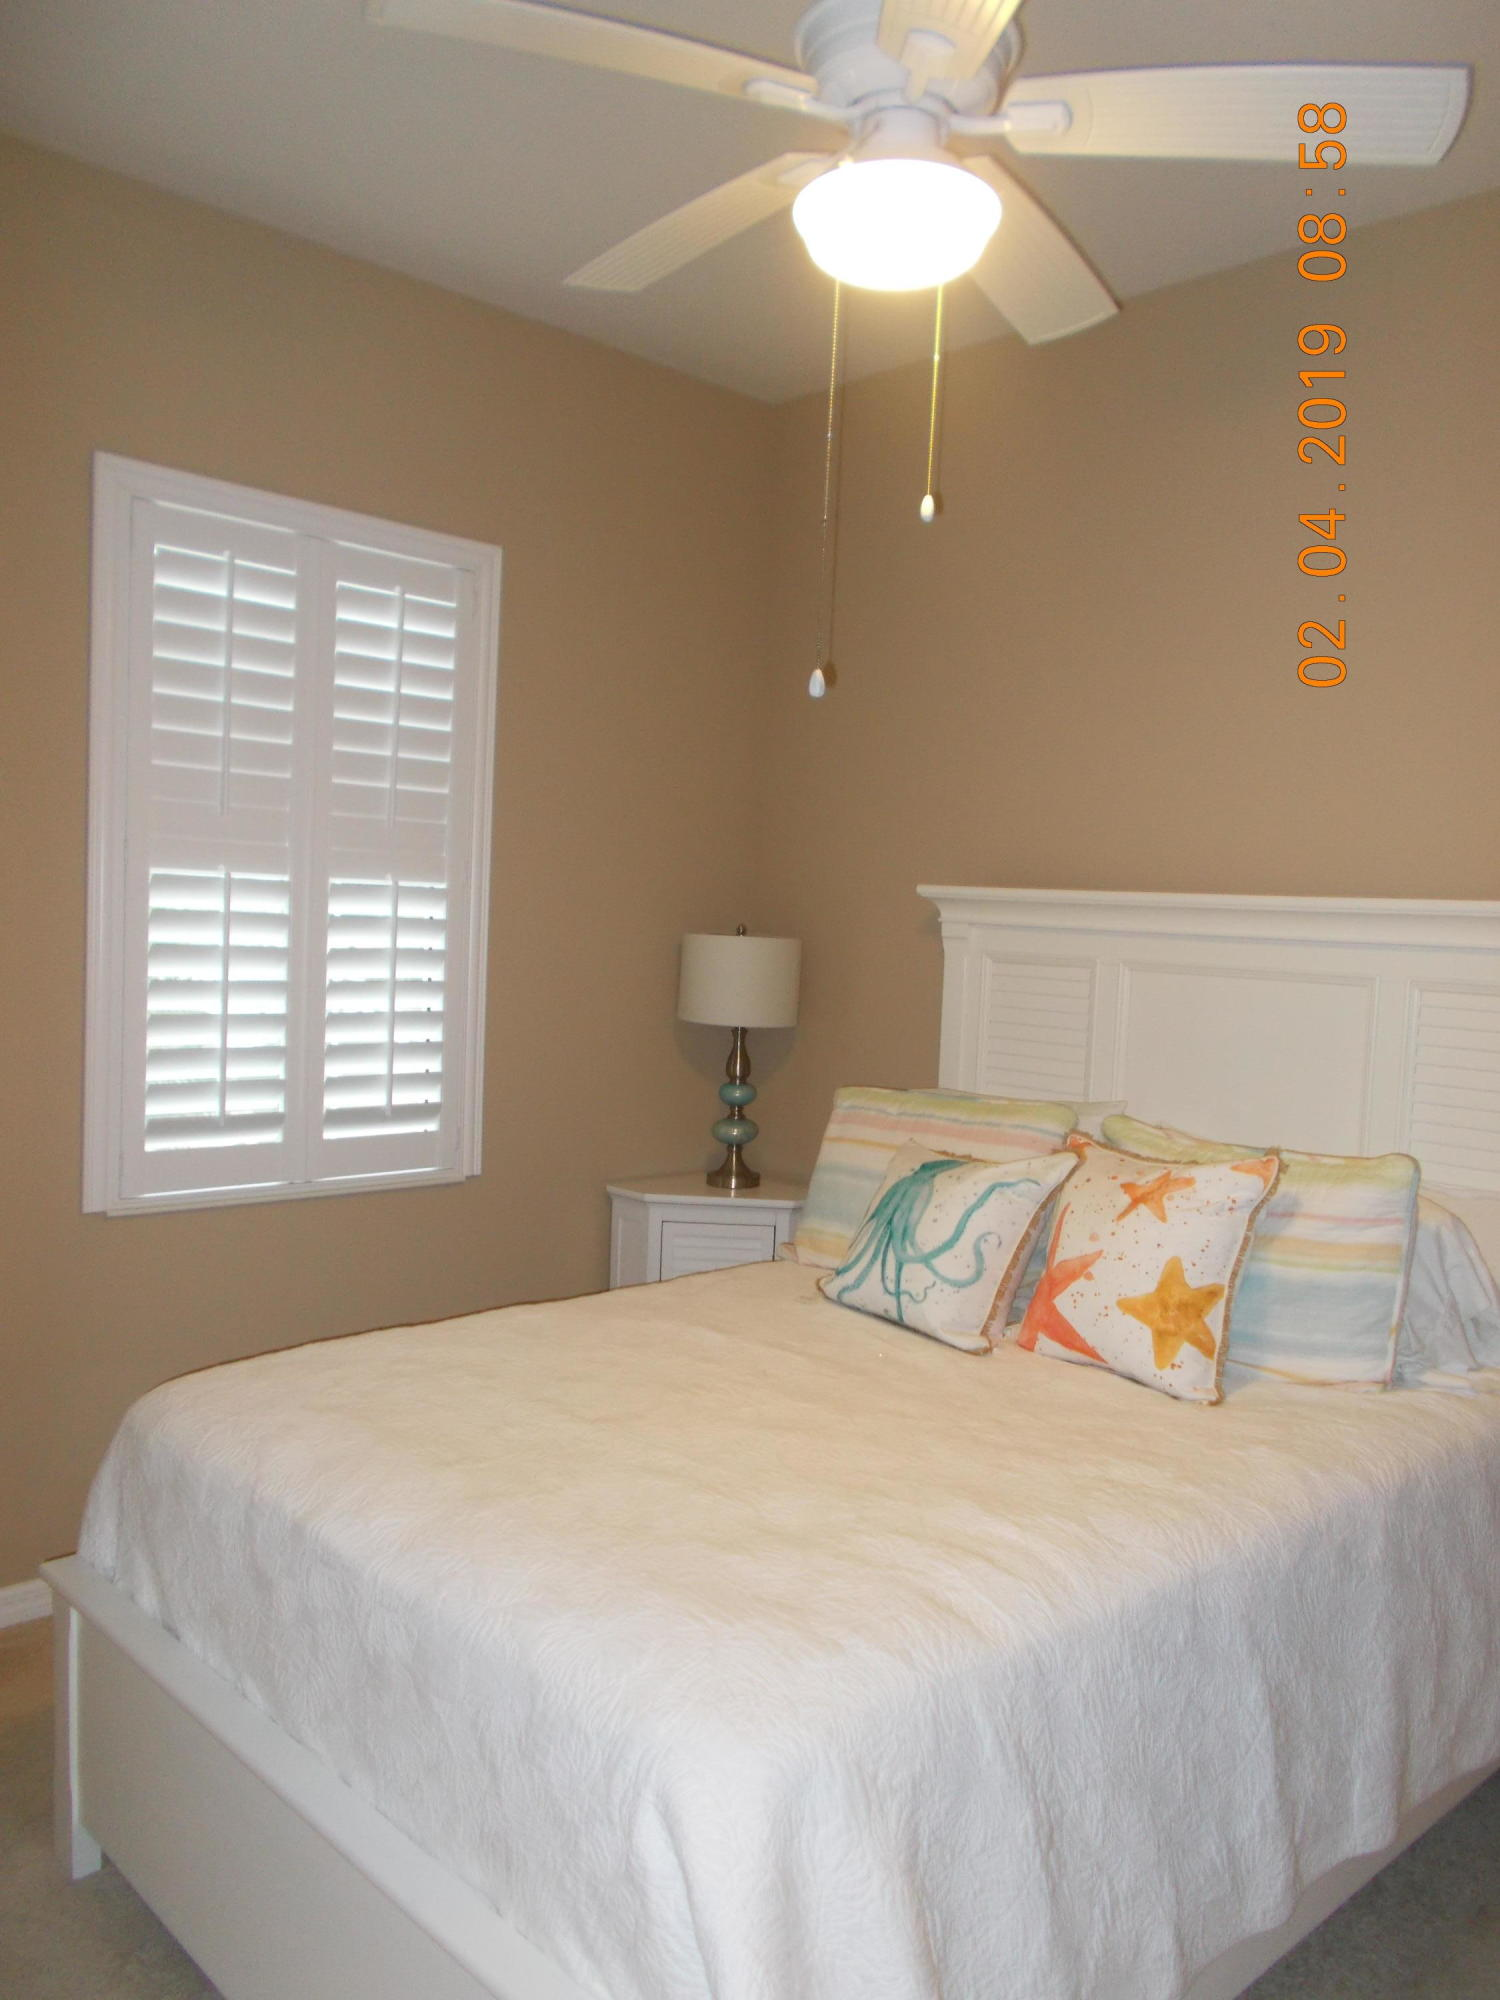 2730 Avalon Way  - Abacoa Homes - photo 11